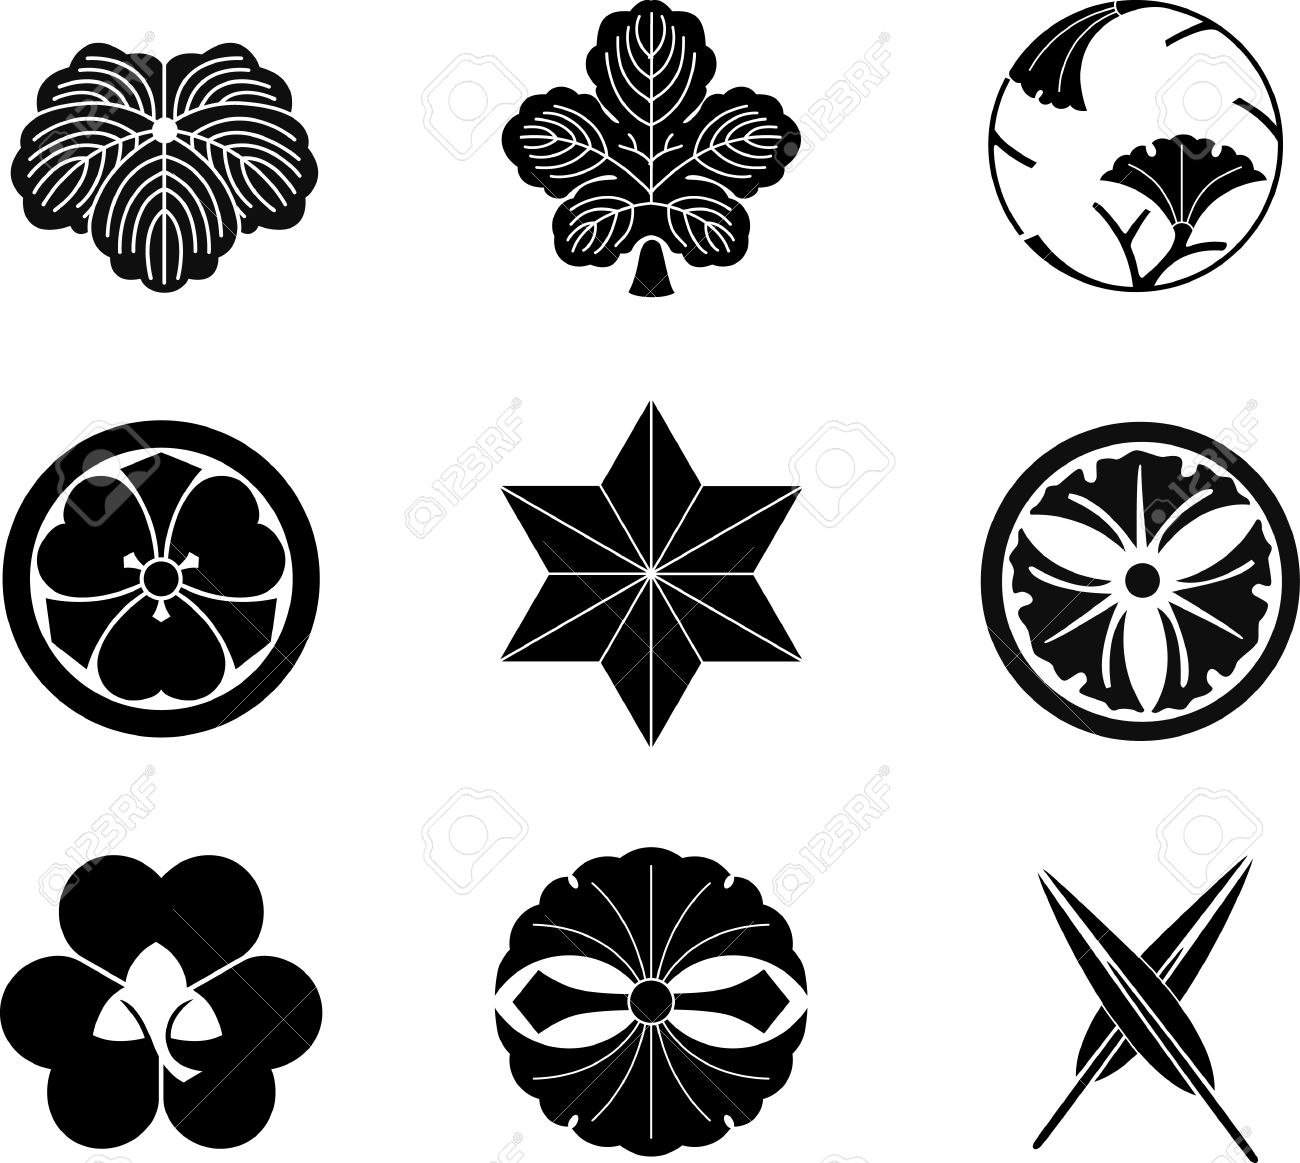 Japanese family crests vector 13 royalty free cliparts vectors japanese family crests vector 13 stock vector 9719258 biocorpaavc